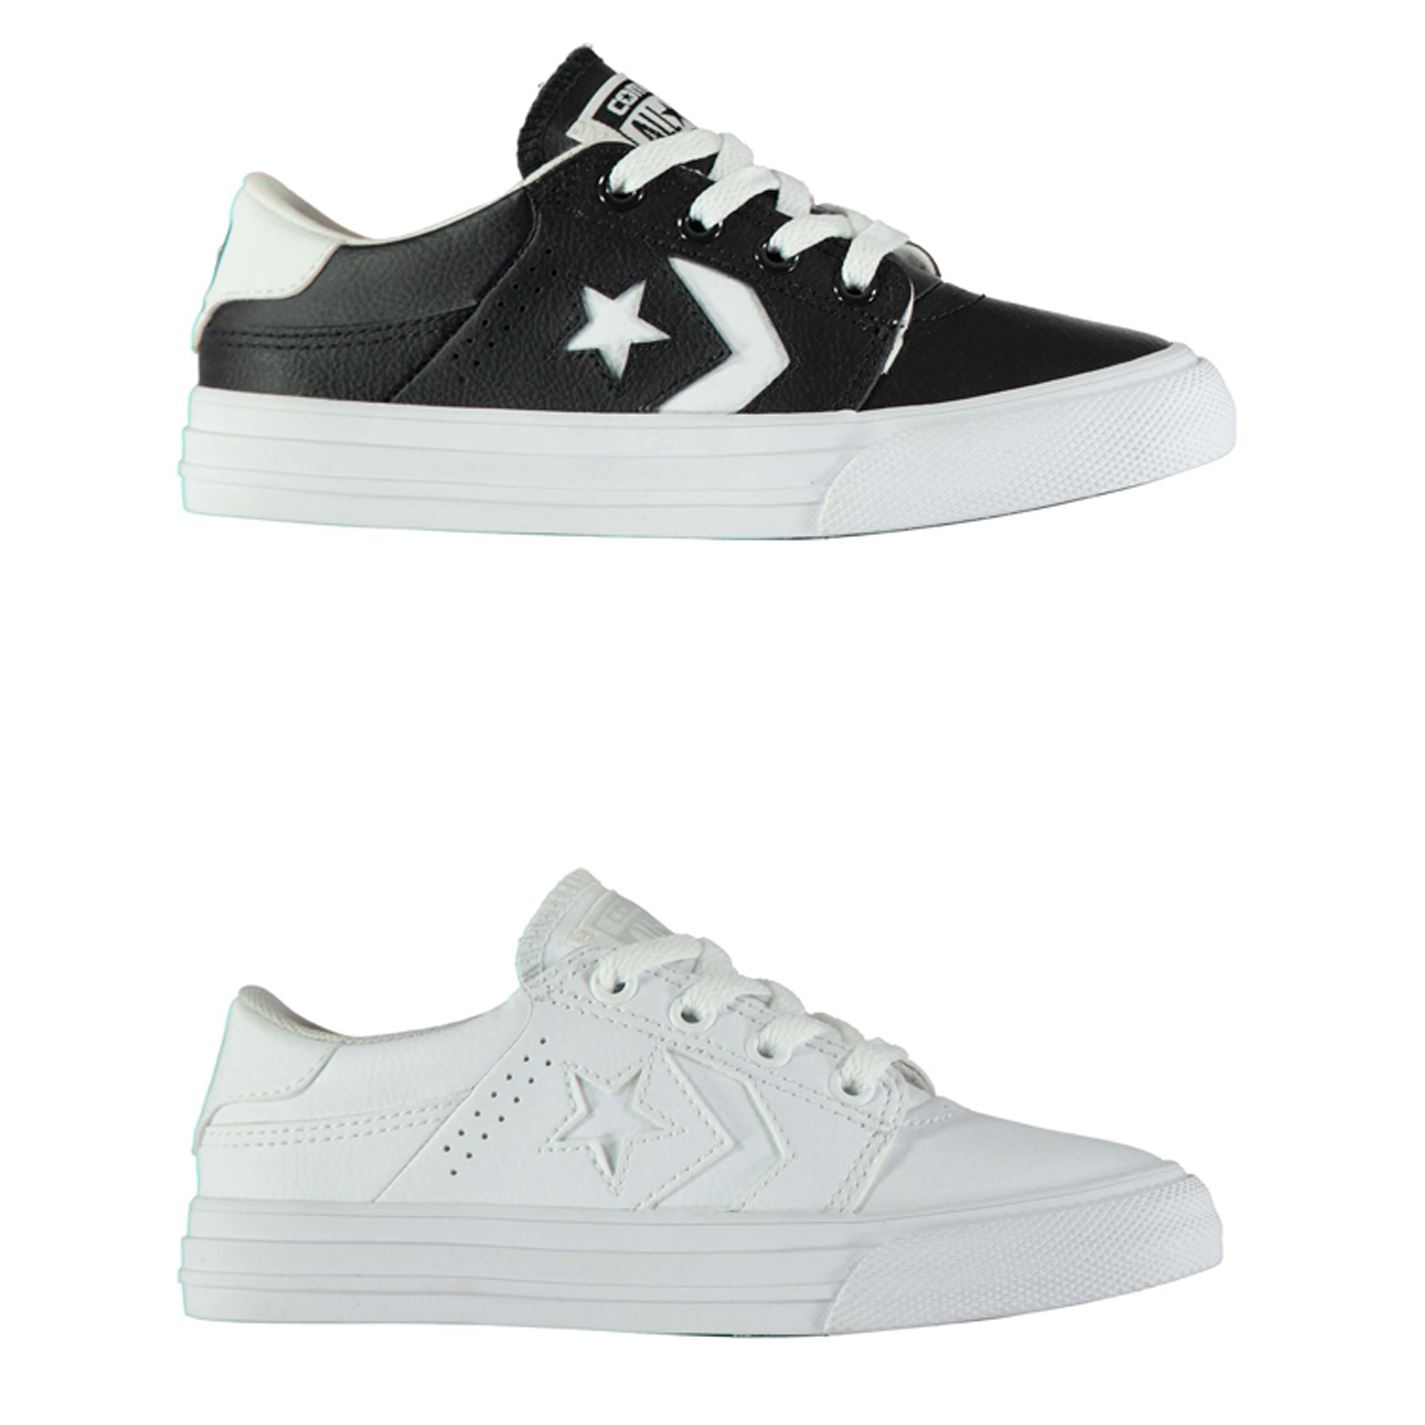 Details about Converse Tre Star AC Trainers Boys Shoes Footwear